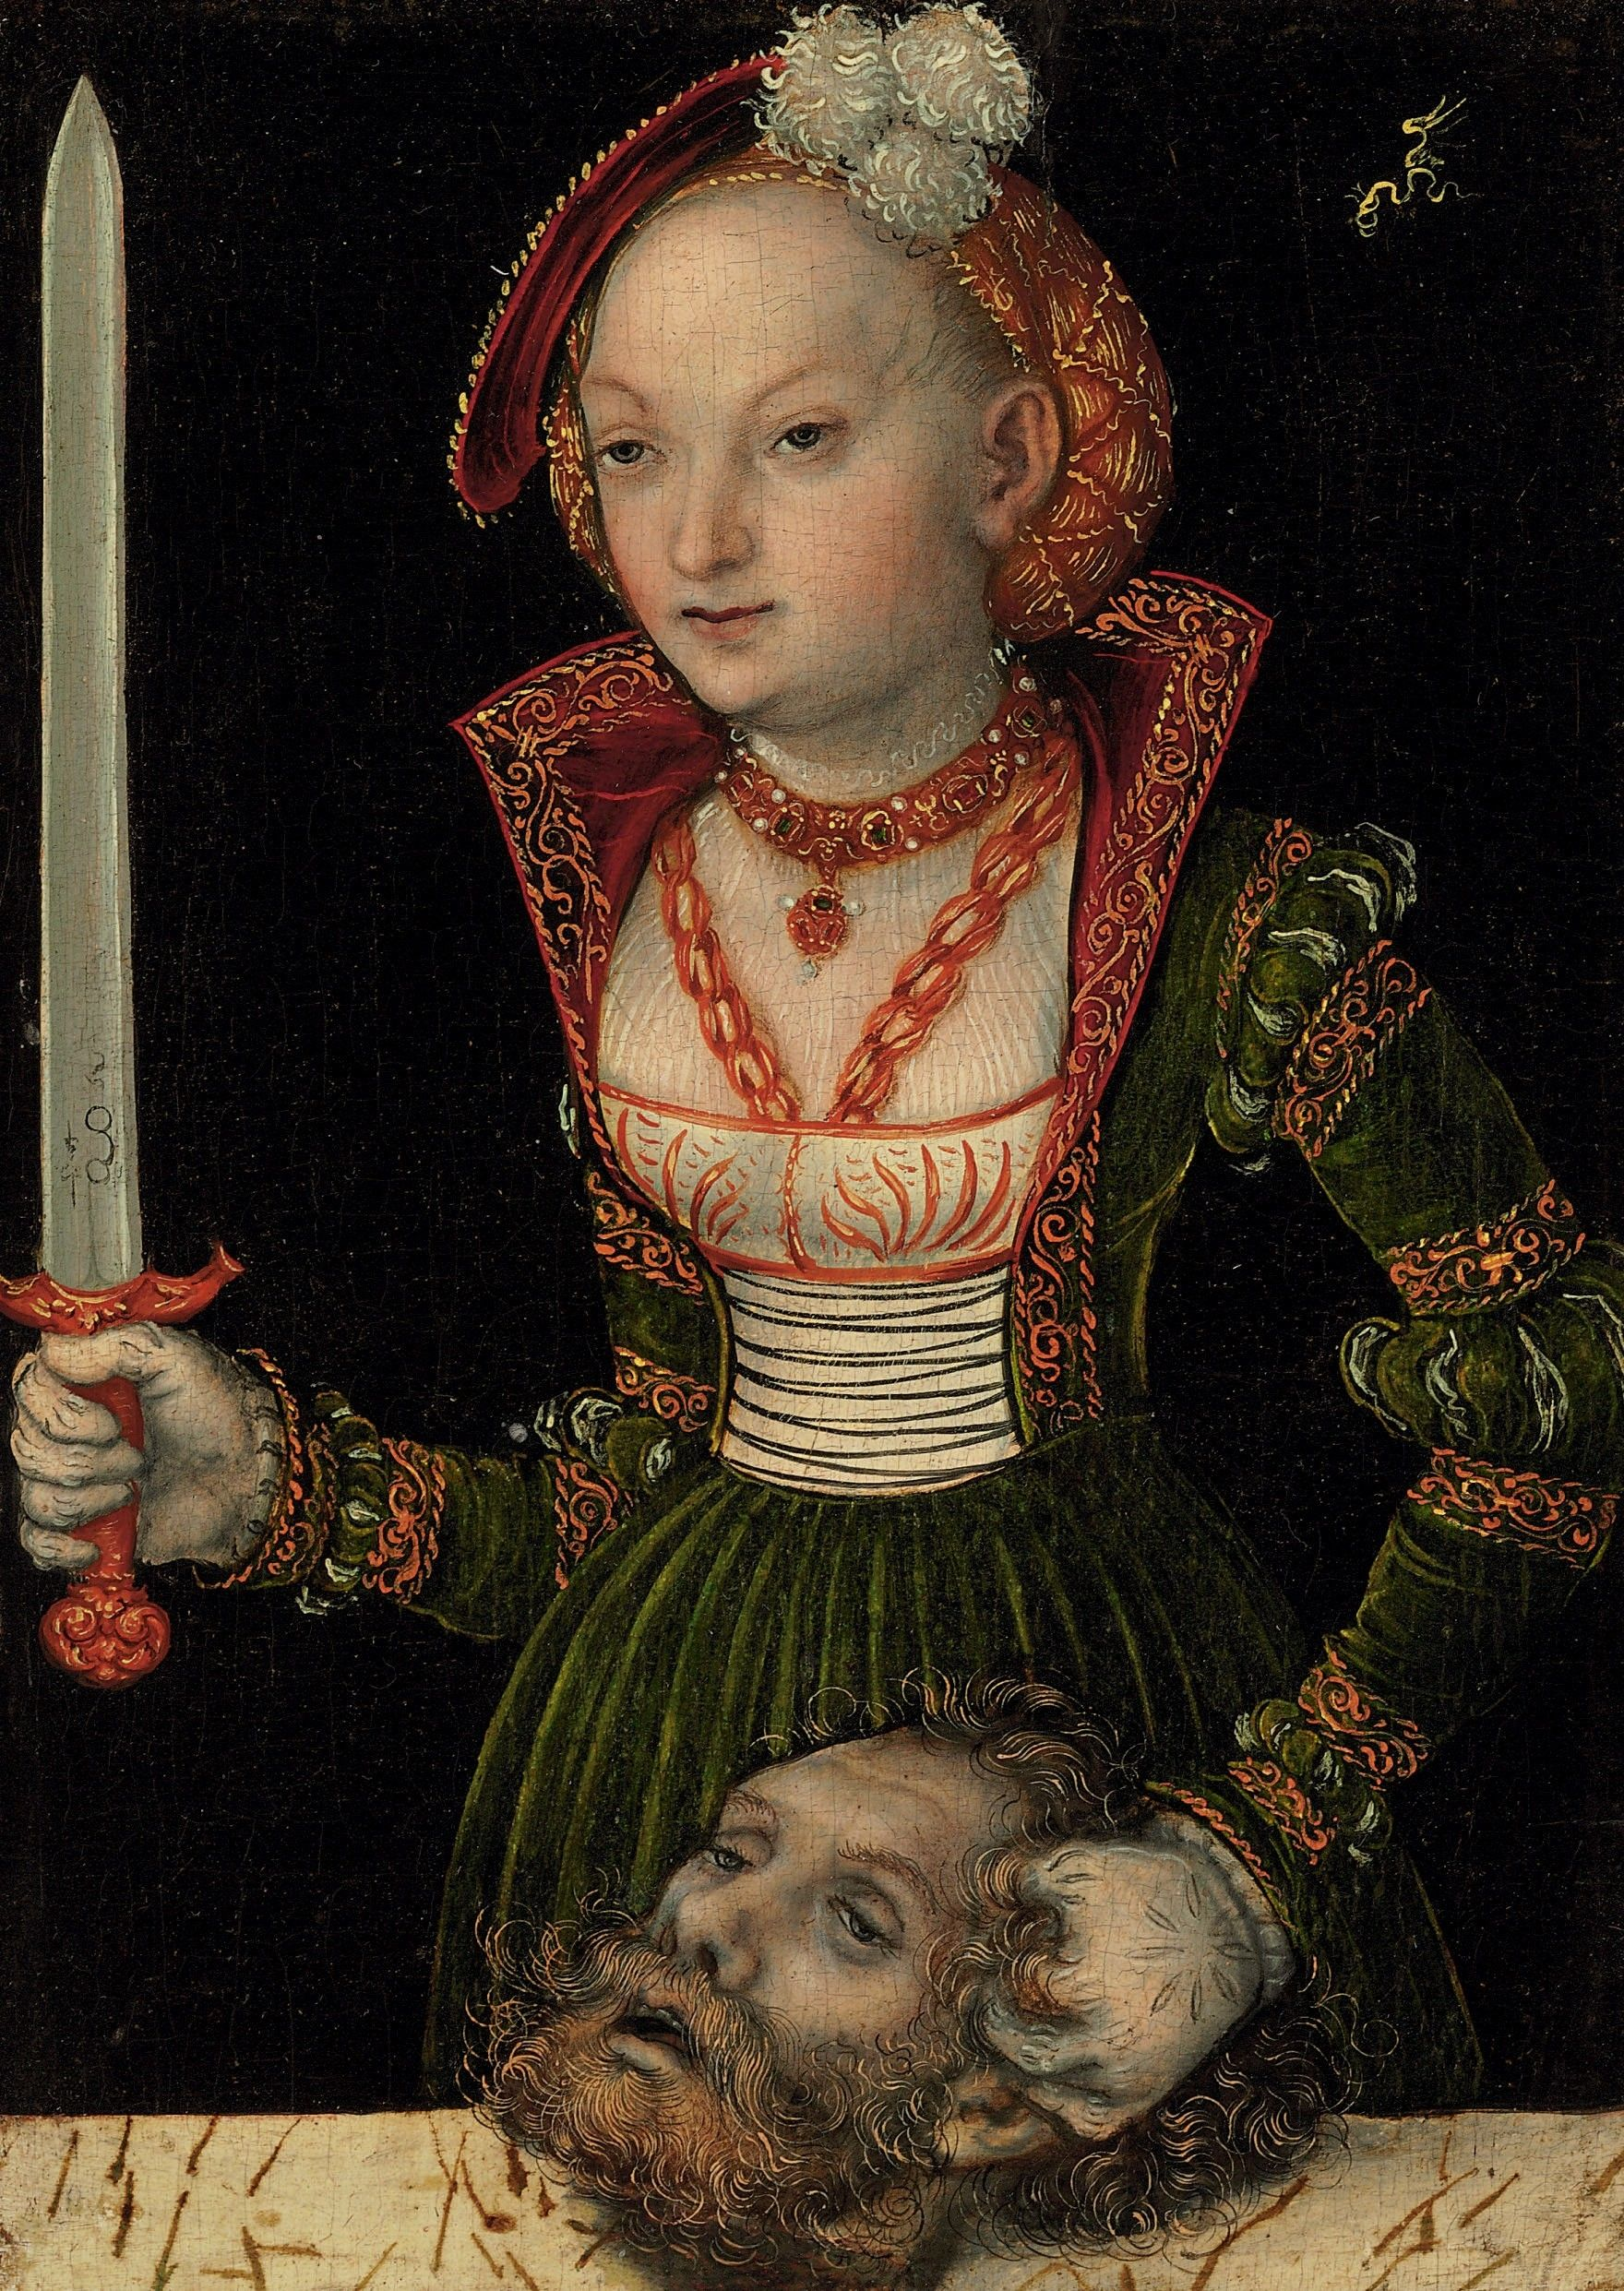 LUCIUS CRANACH PAINTING | The Art Institute provided a wonderful ...